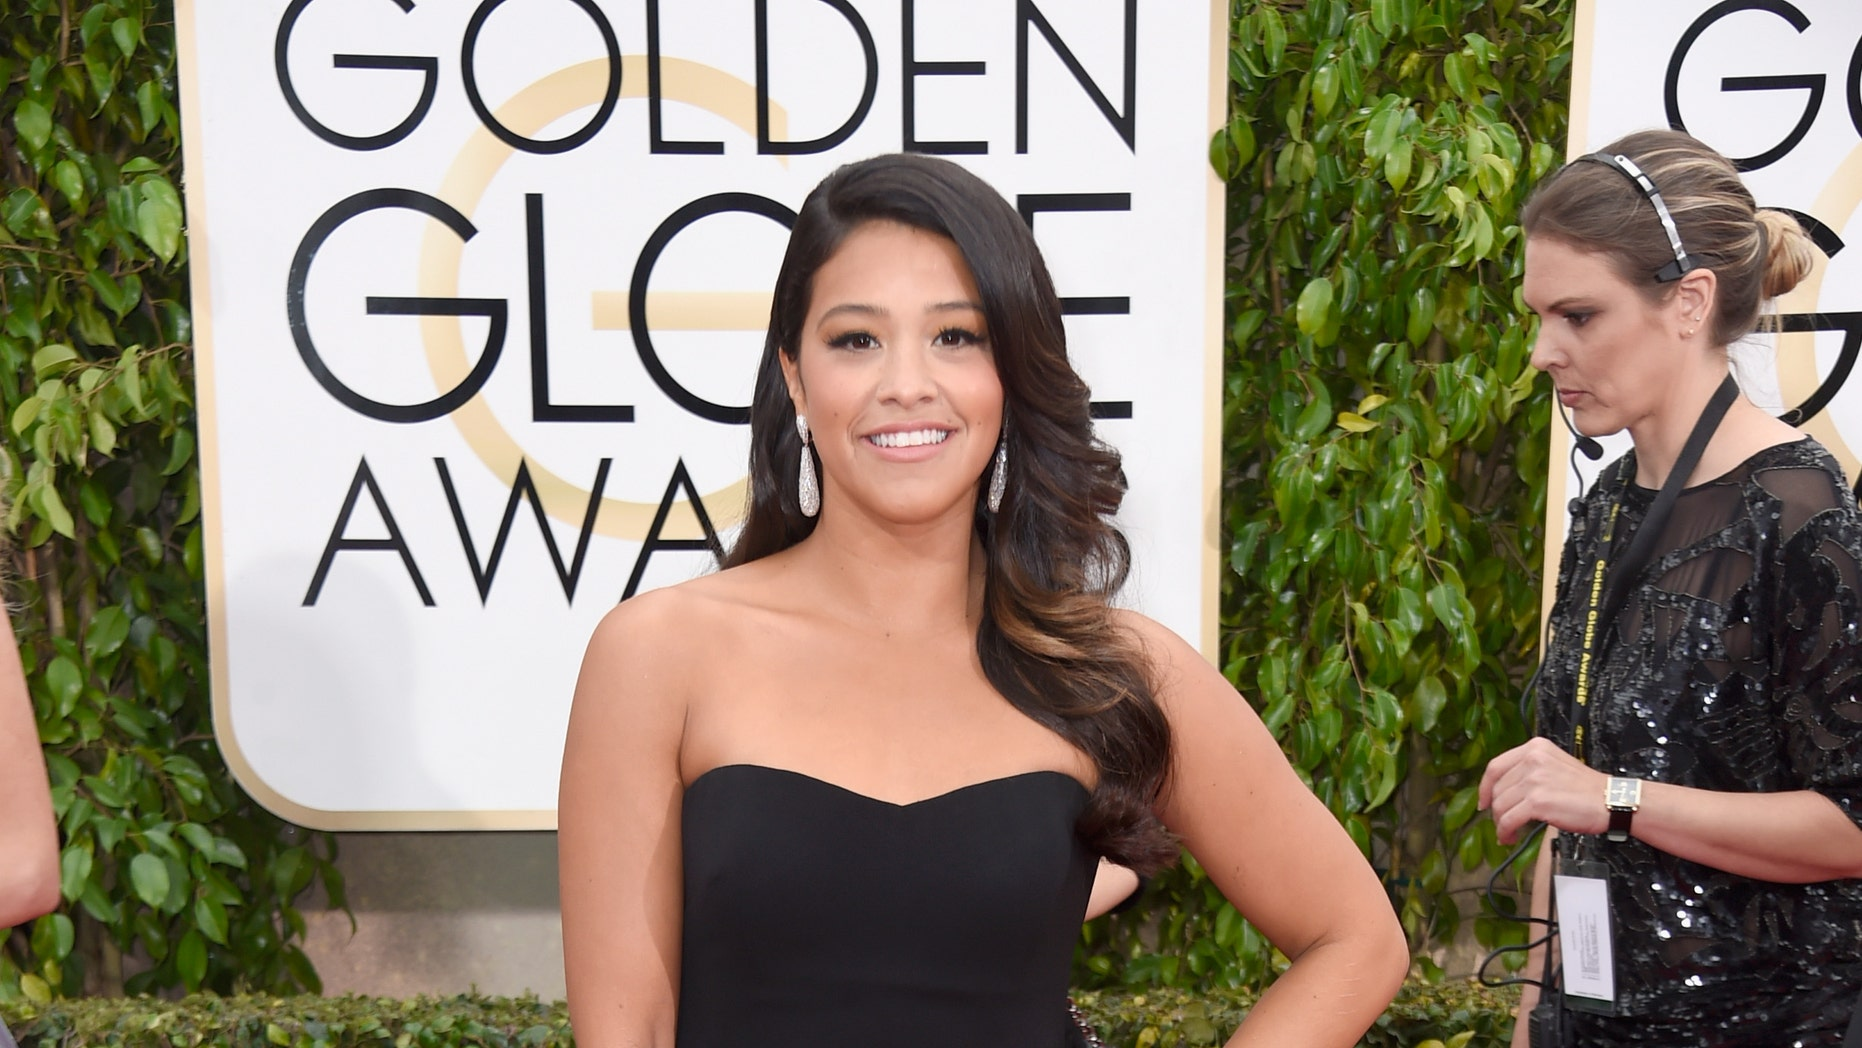 BEVERLY HILLS, CA - JANUARY 11:  Actress Gina Rodriguez attends the 72nd Annual Golden Globe Awards at The Beverly Hilton Hotel on January 11, 2015 in Beverly Hills, California.  (Photo by Frazer Harrison/Getty Images)